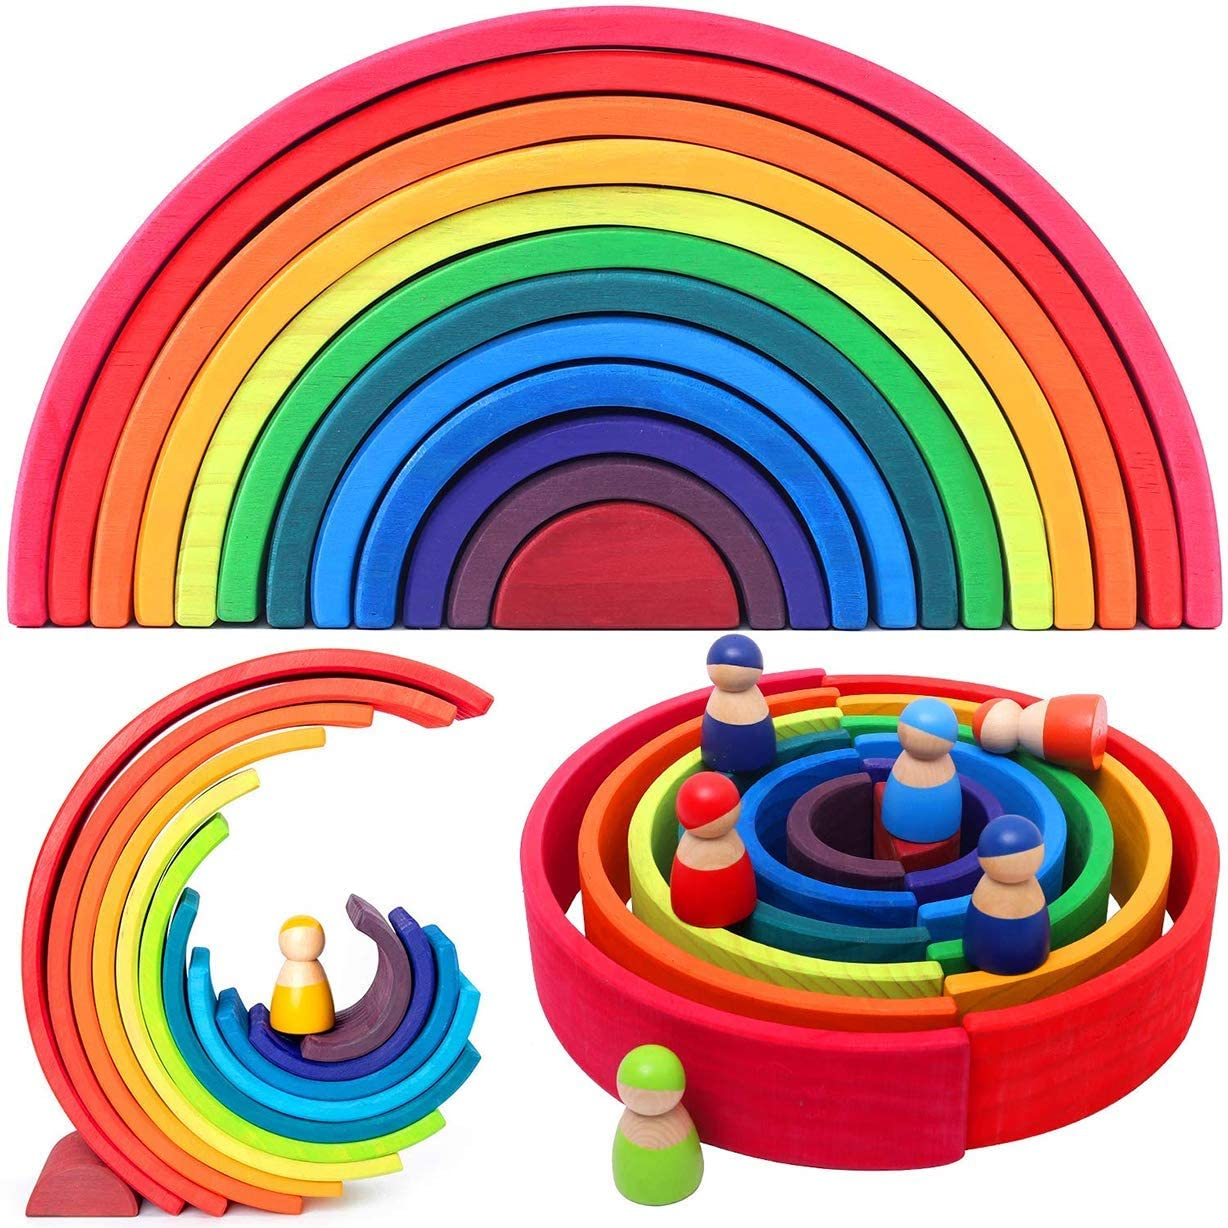 Bonheur Wooden Rainbow Stacking Stacker Puzzle Blocks,Early Development Gift for Toddler Kids